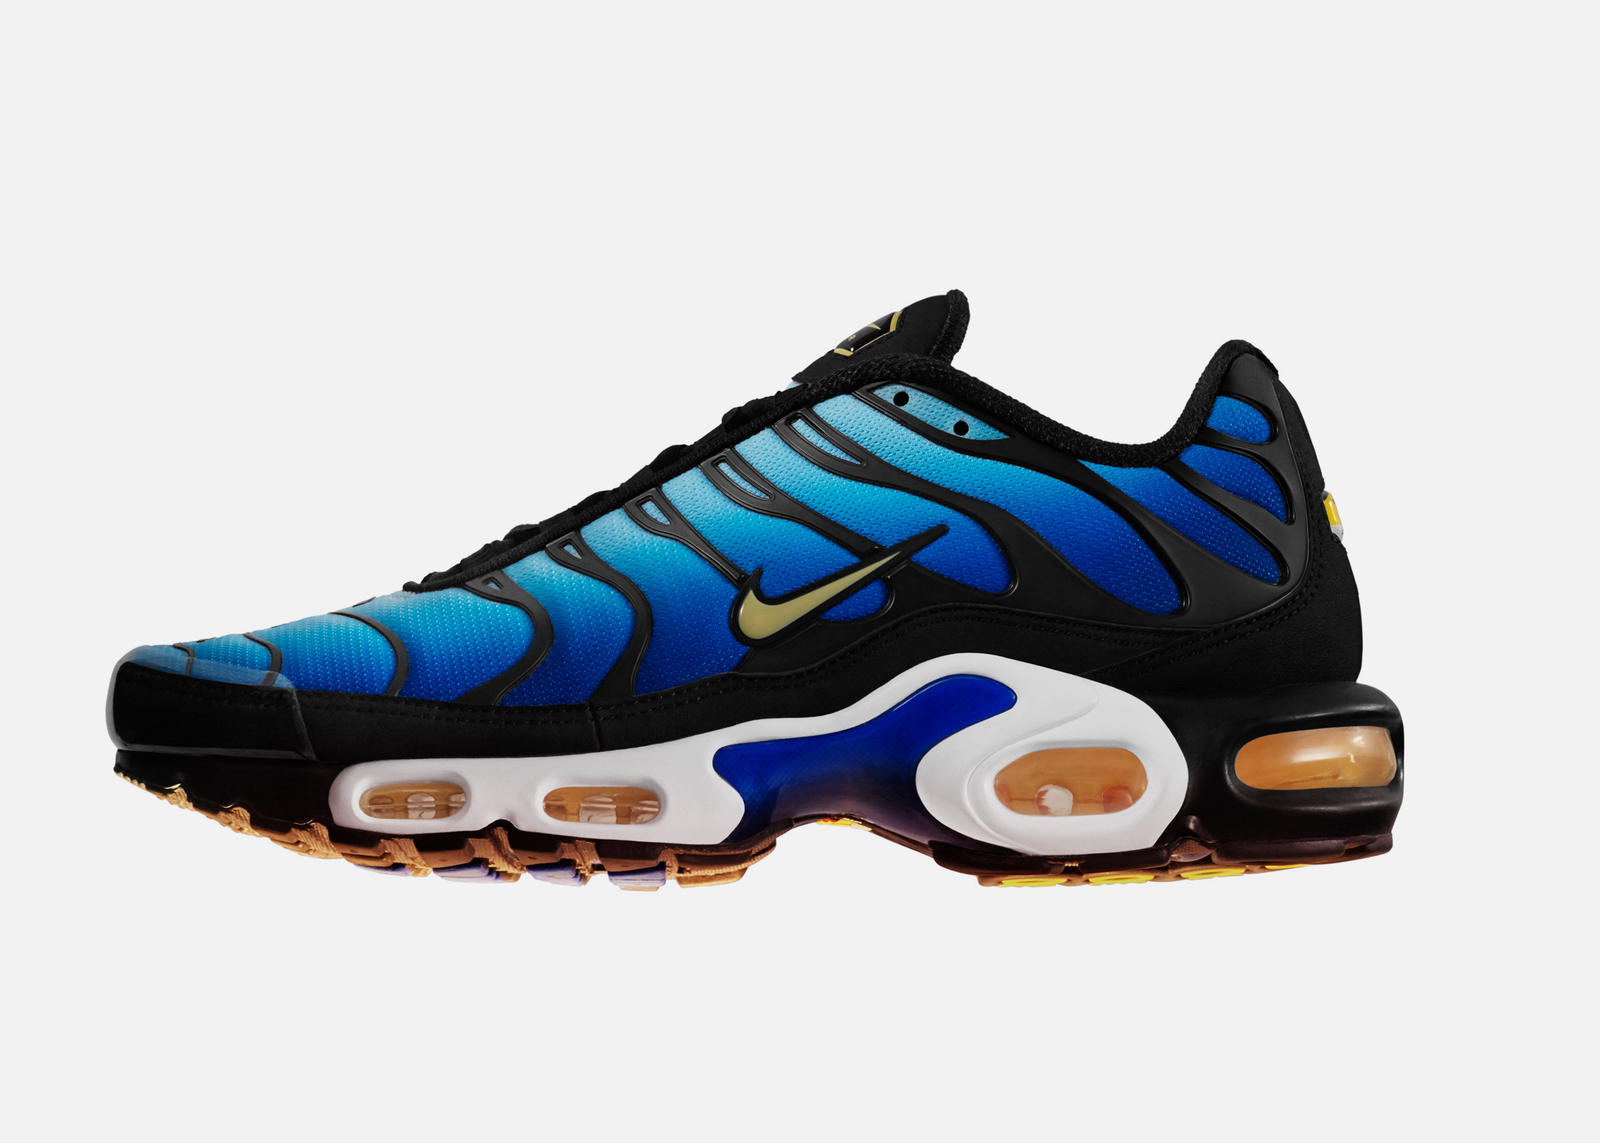 online retailer 1c245 5d3f5 The Untold Story of the Nike Air Max Plus 20